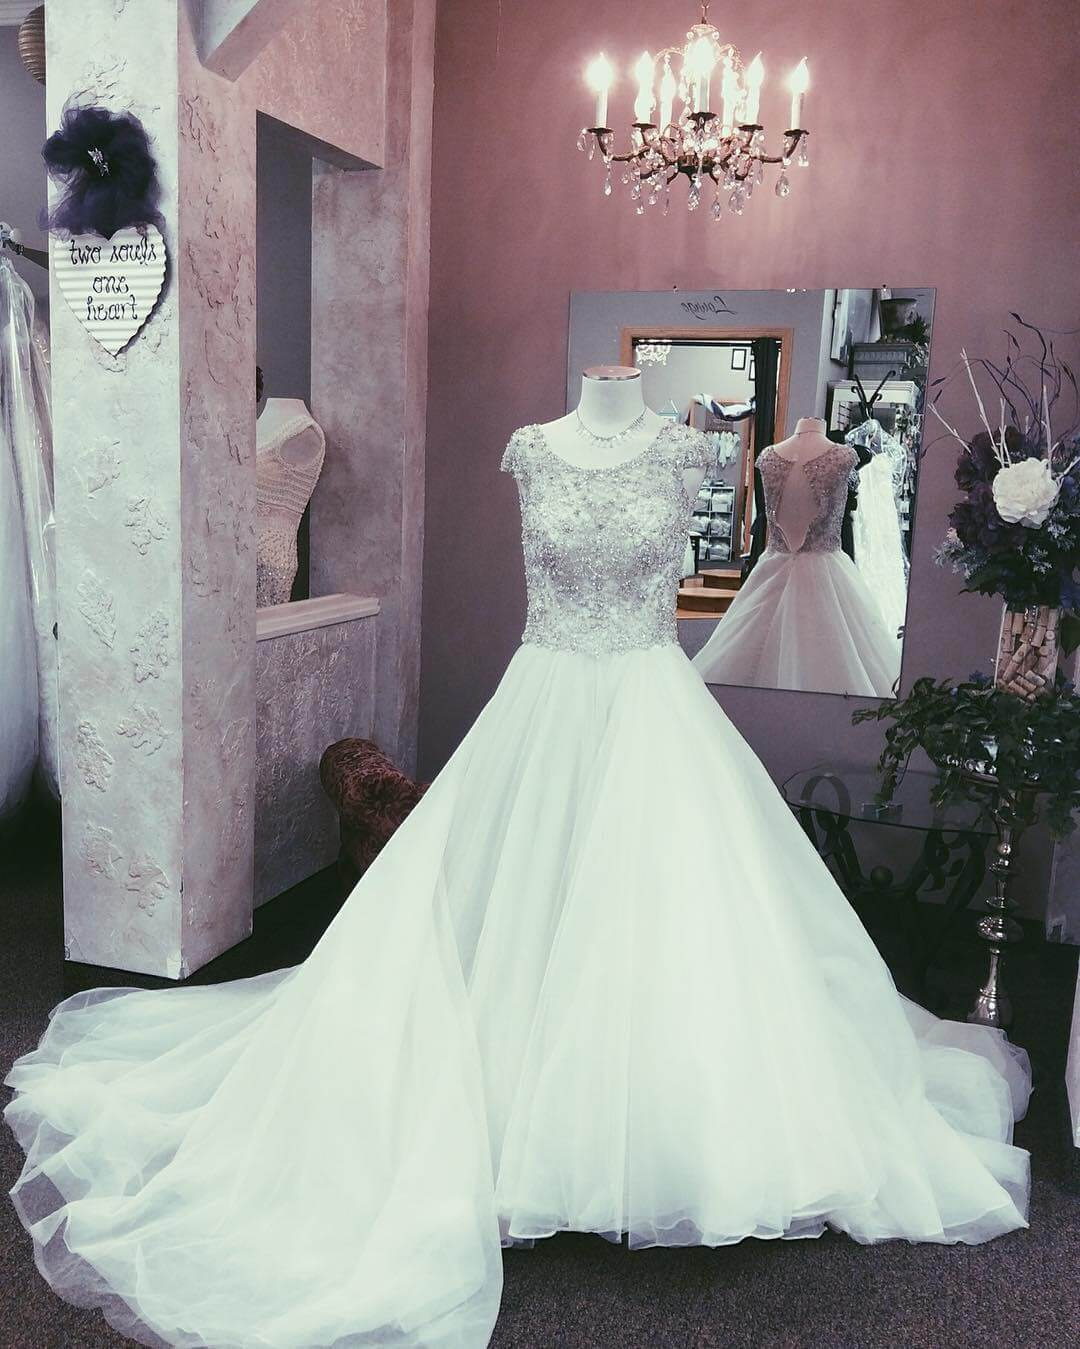 Wedding Gown Resale: 15326205_663895977125260_52160933286124000_o